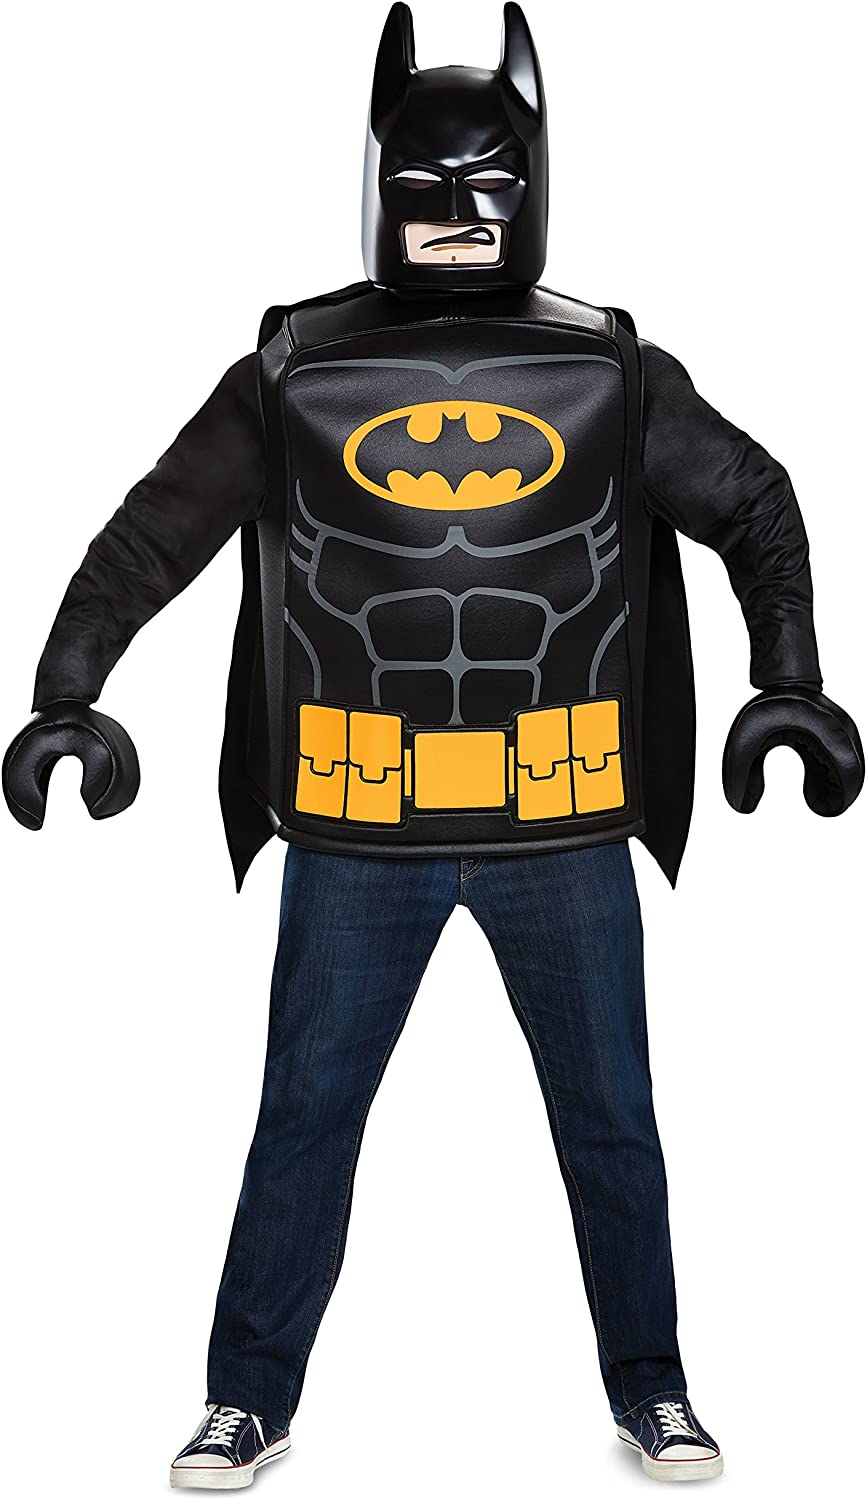 Disguise Max 76% OFF Men's 2021new shipping free Batman Adult Costume Classic